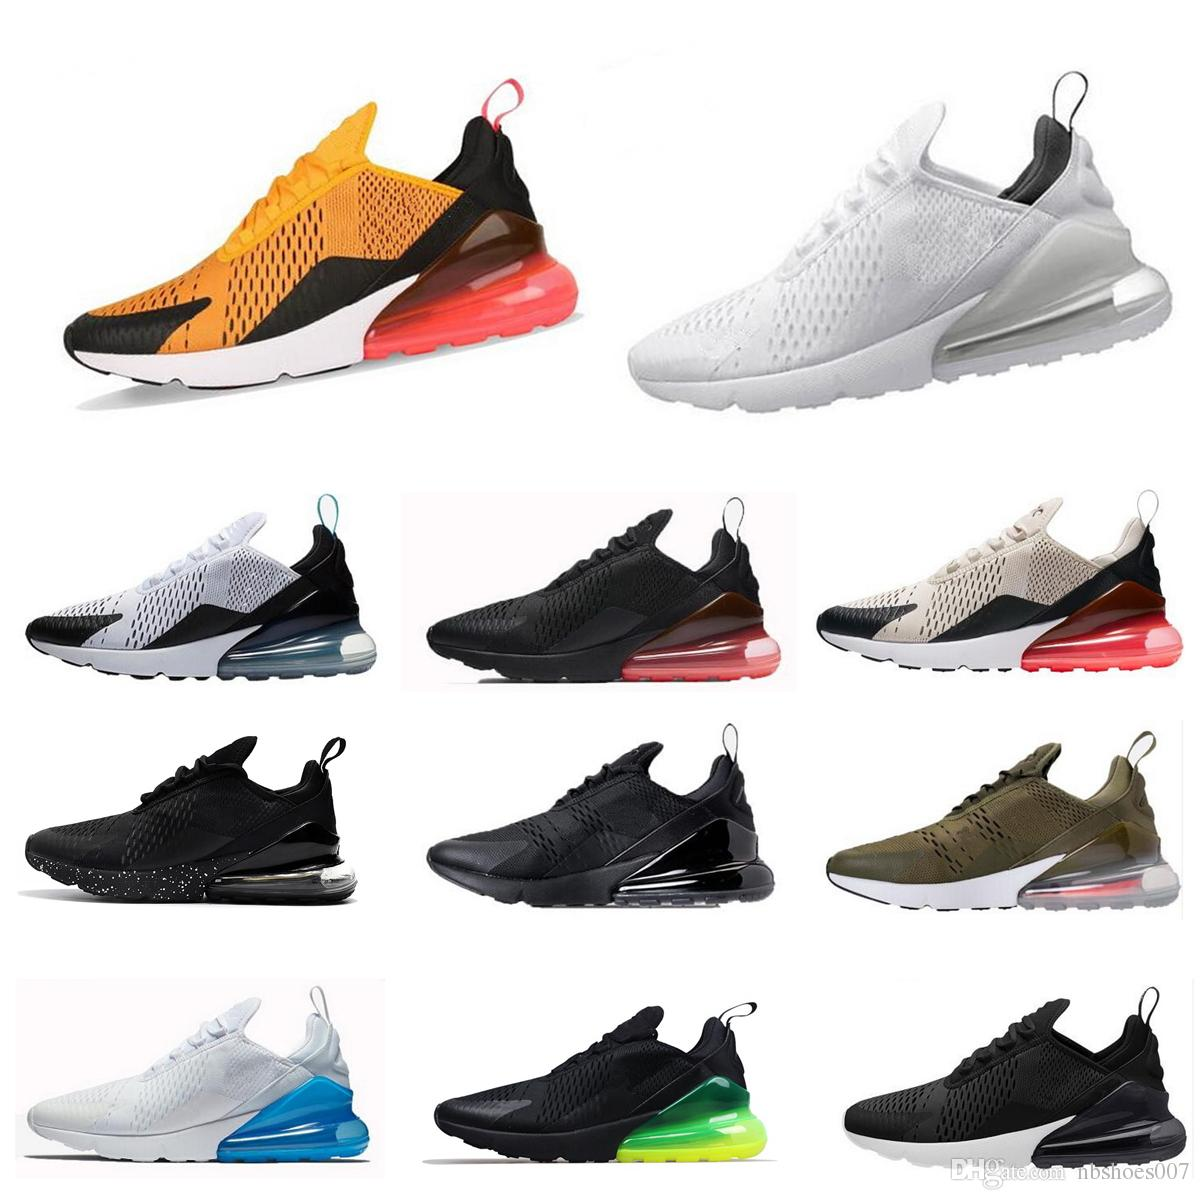 best sneakers 06f30 f76d1 ... promo code for compre caliente venta 2018 zapatos casuales nike air max  airmax 270 negro blanco